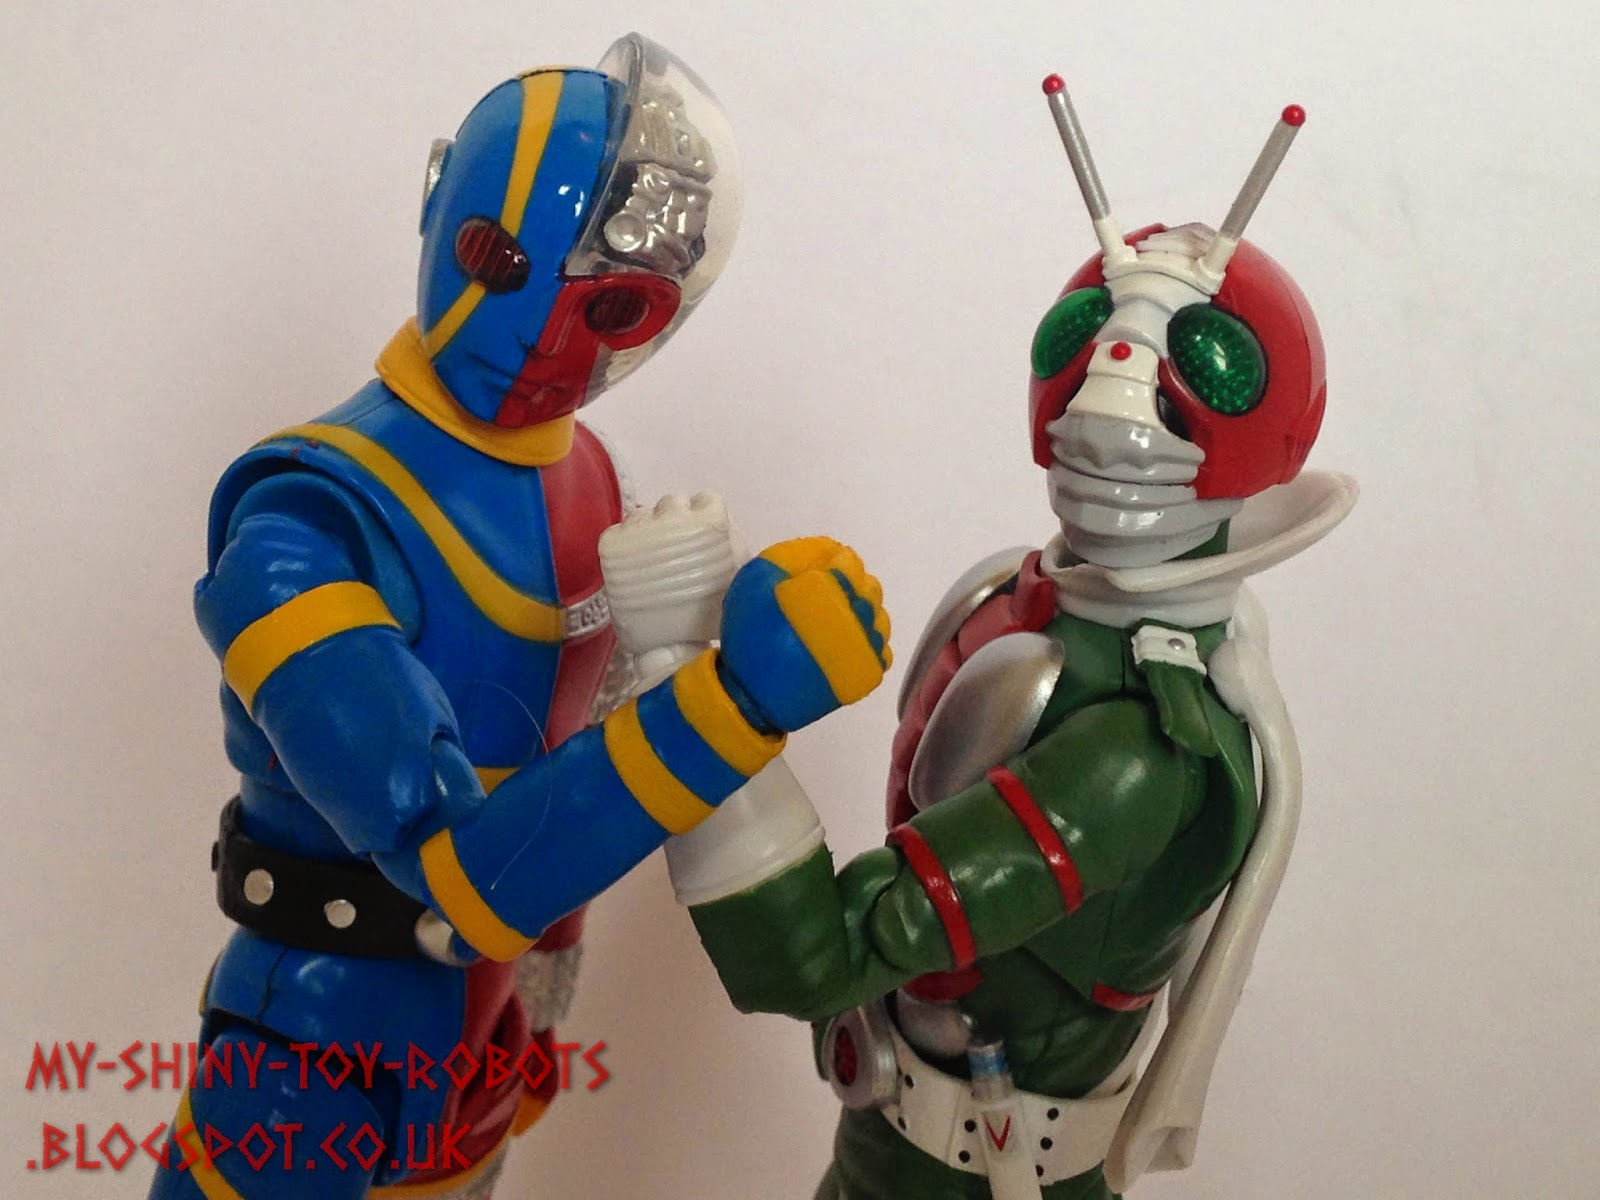 With Kikaider